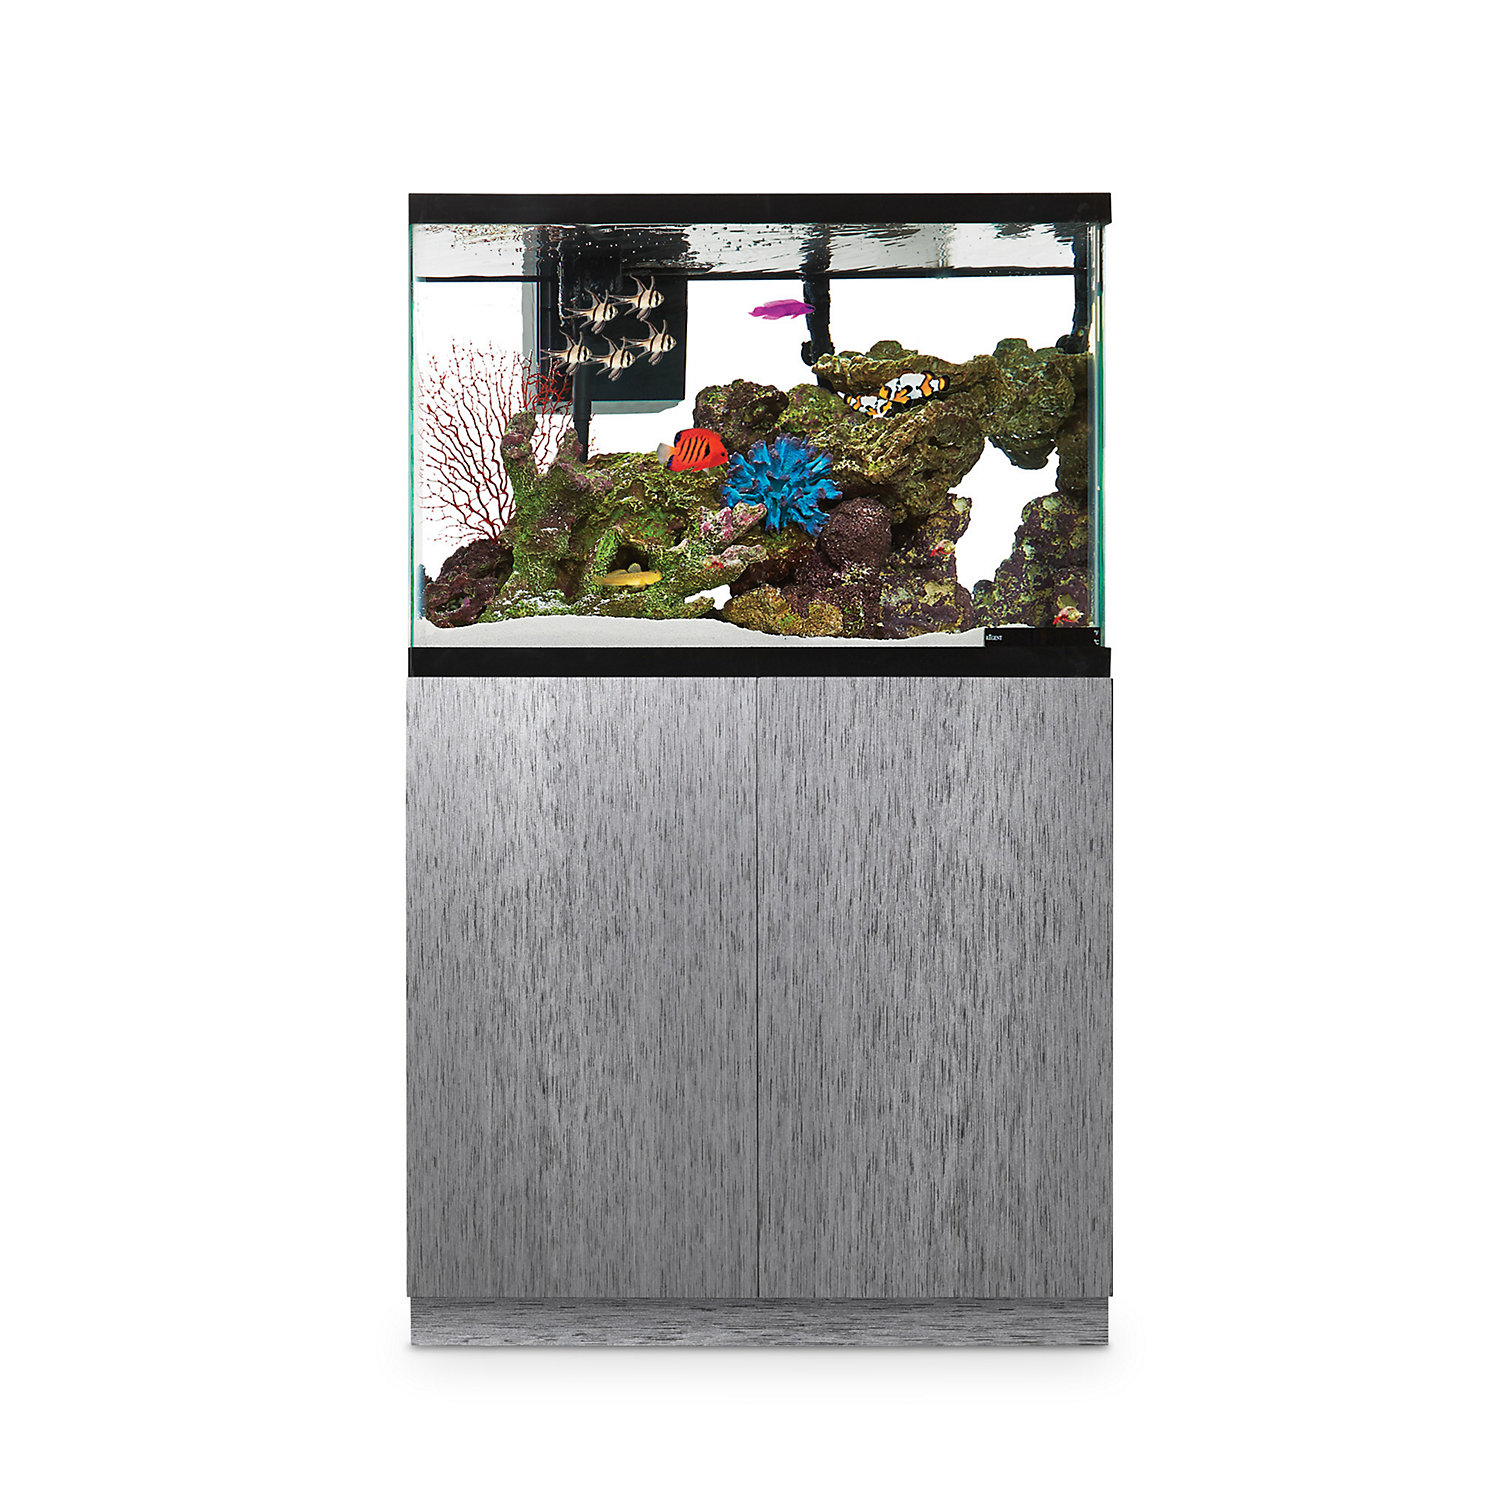 Imagitarium Brushed Steel Look Fish Tank Stand Up to 40 Gal.